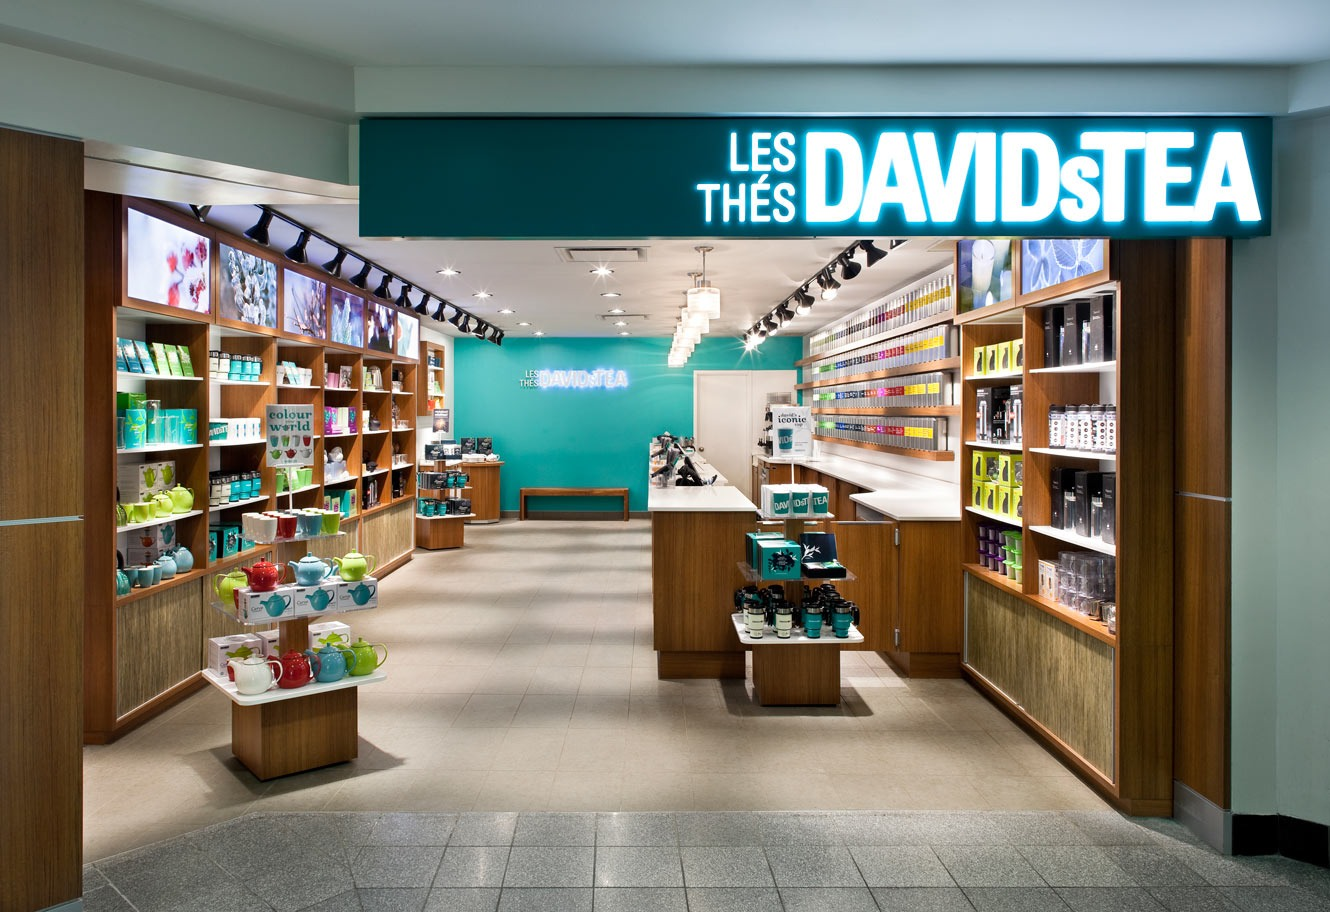 Check out http://www.davidstea.com/ to find awesome teas for different thing!!! Best tea's ever!!